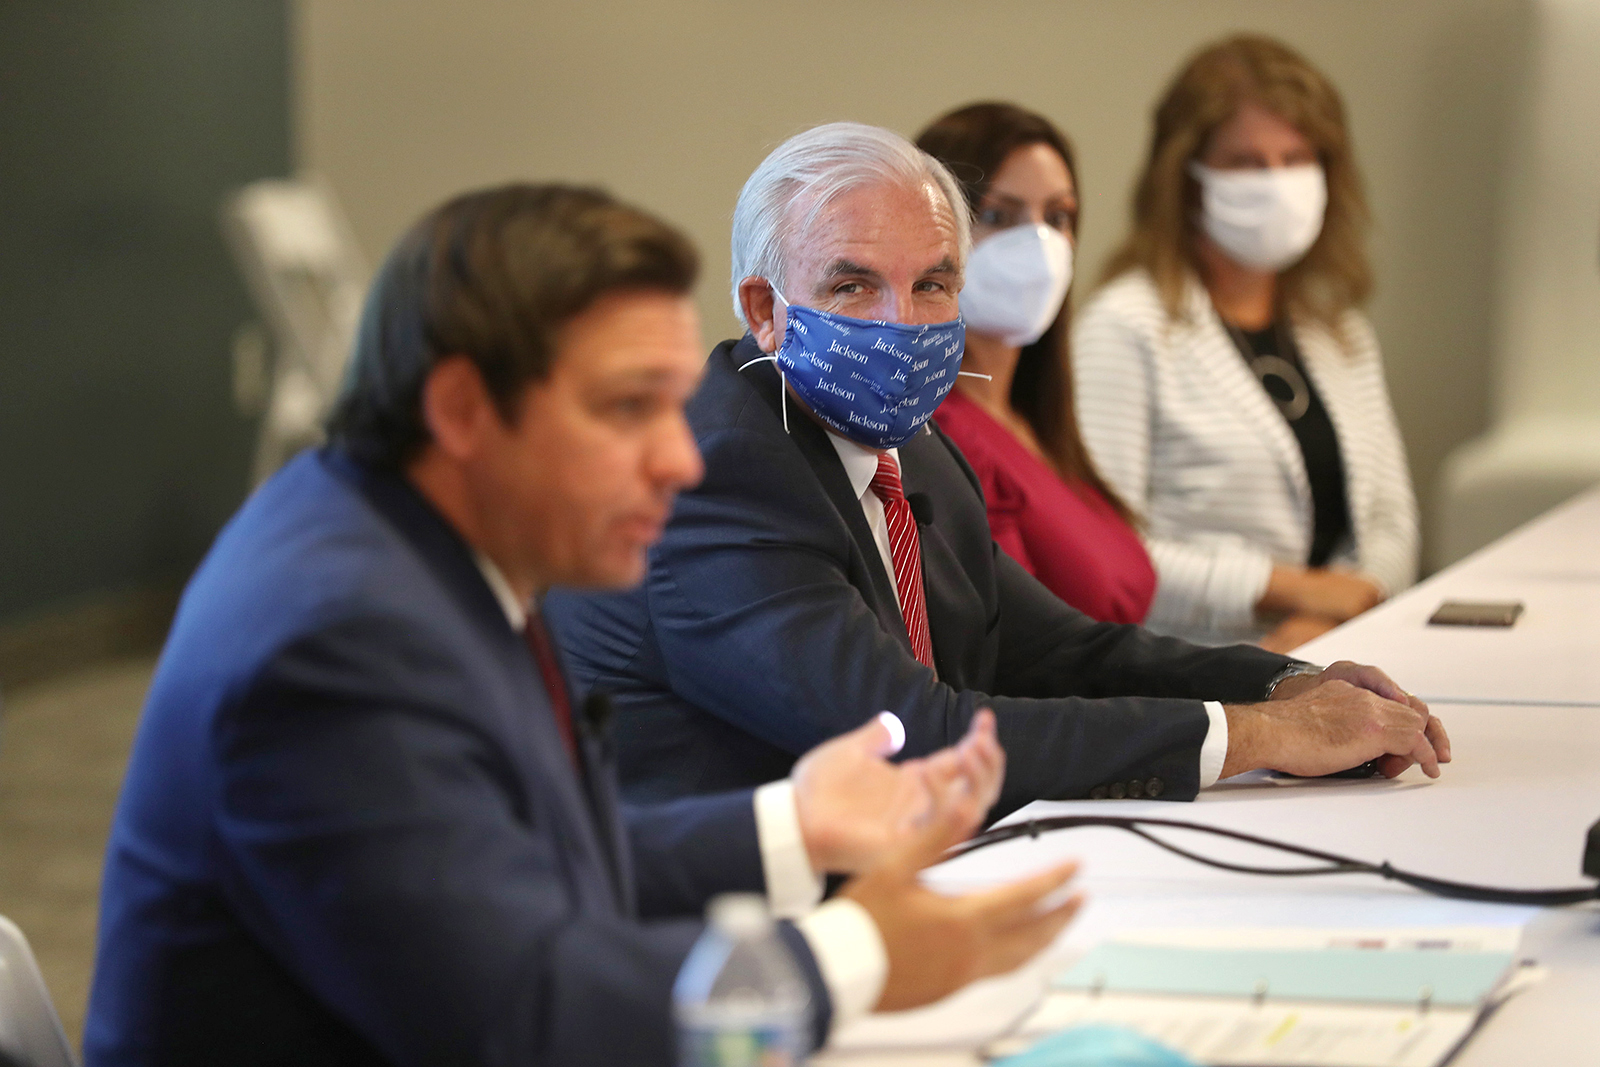 Mayor of Miami-Dade Carlos A. Gimenez (Right) listens as Florida Gov. Ron DeSantis (Left) speaks during a press conference in Miami on July 07.